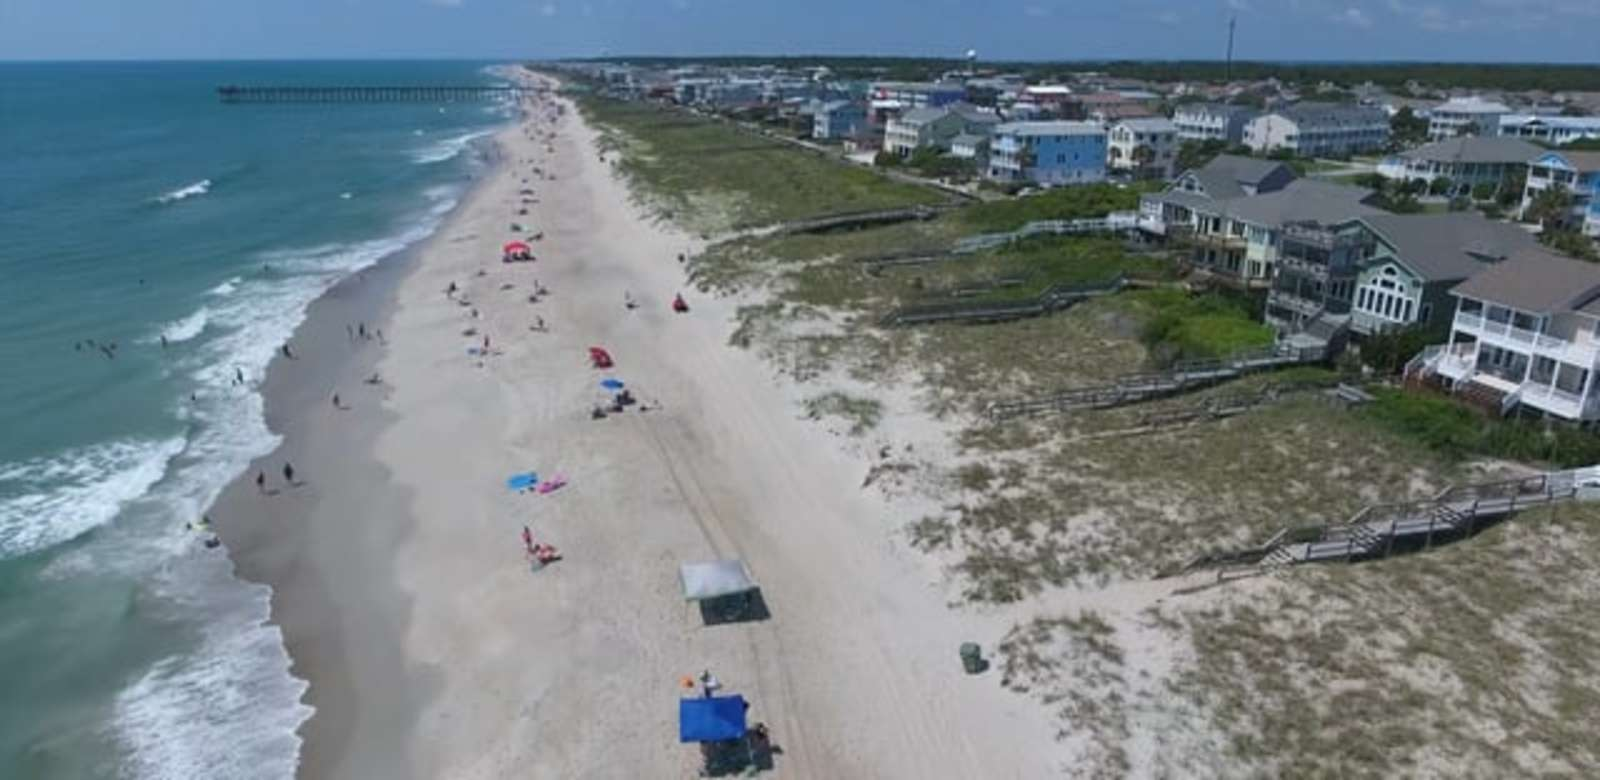 Kure Beach Web Cam Live | Travel Guide